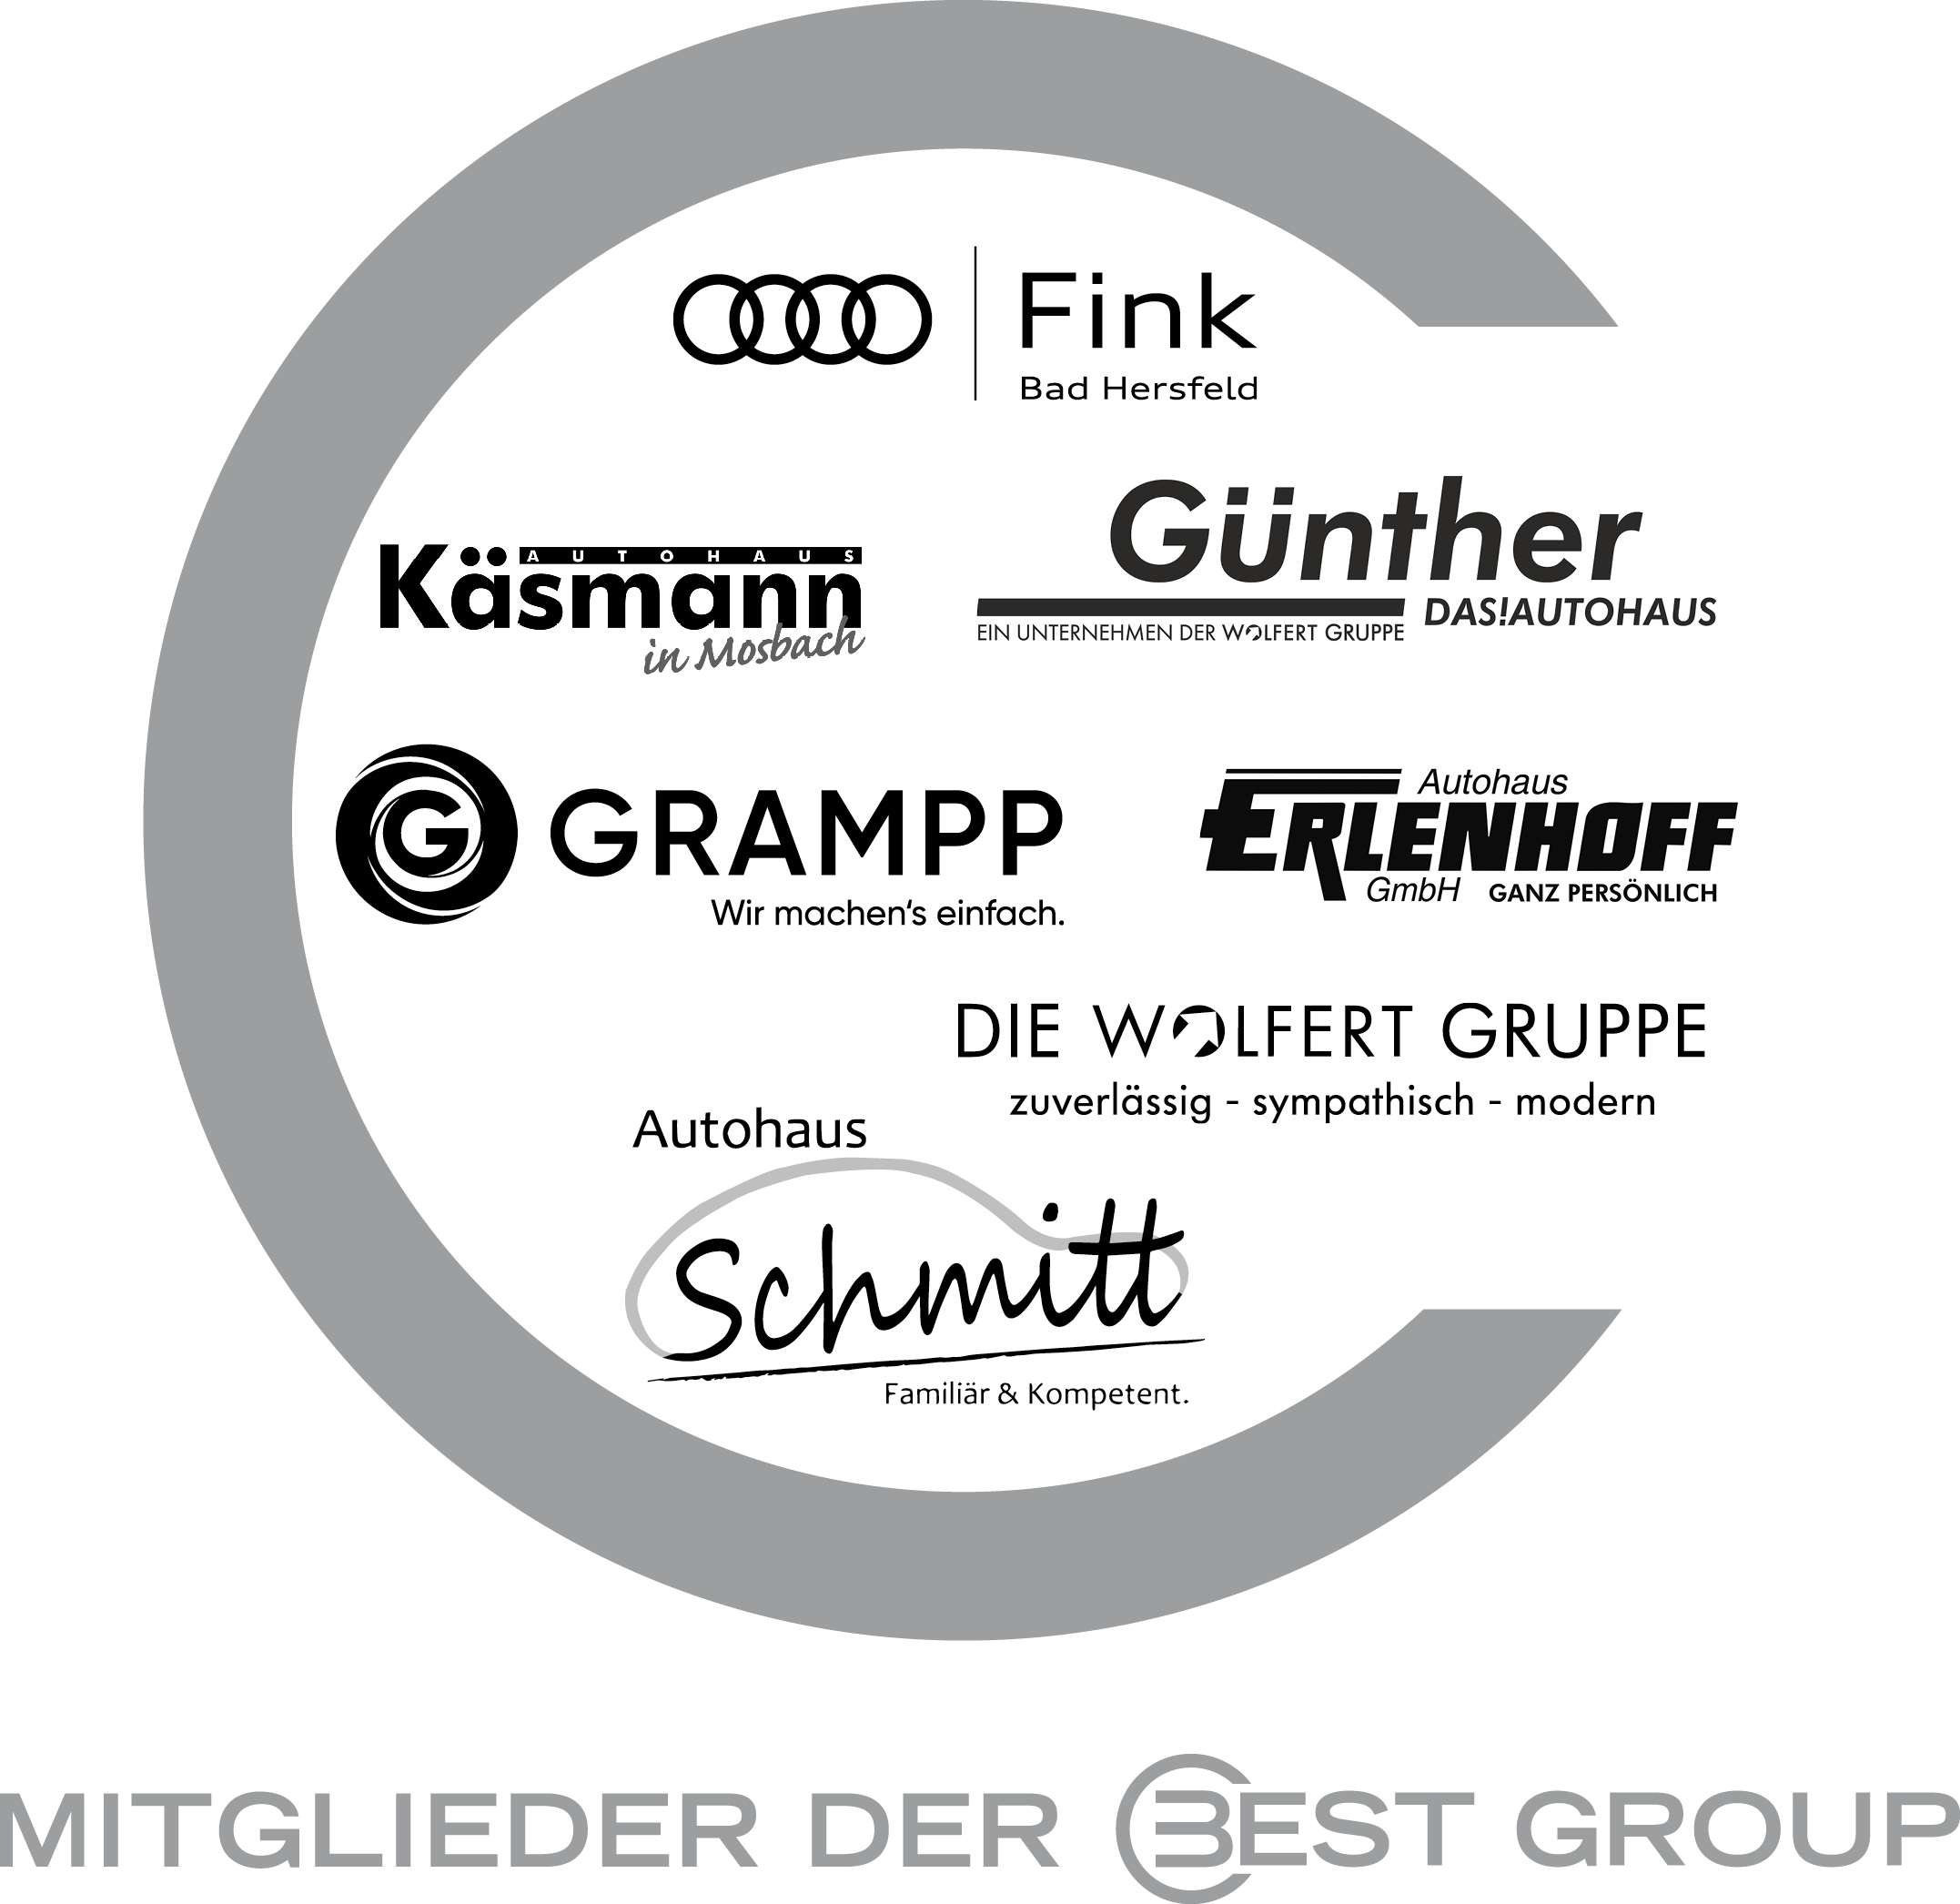 © BEST GROUP | Best Group alle Mitglieder Logos